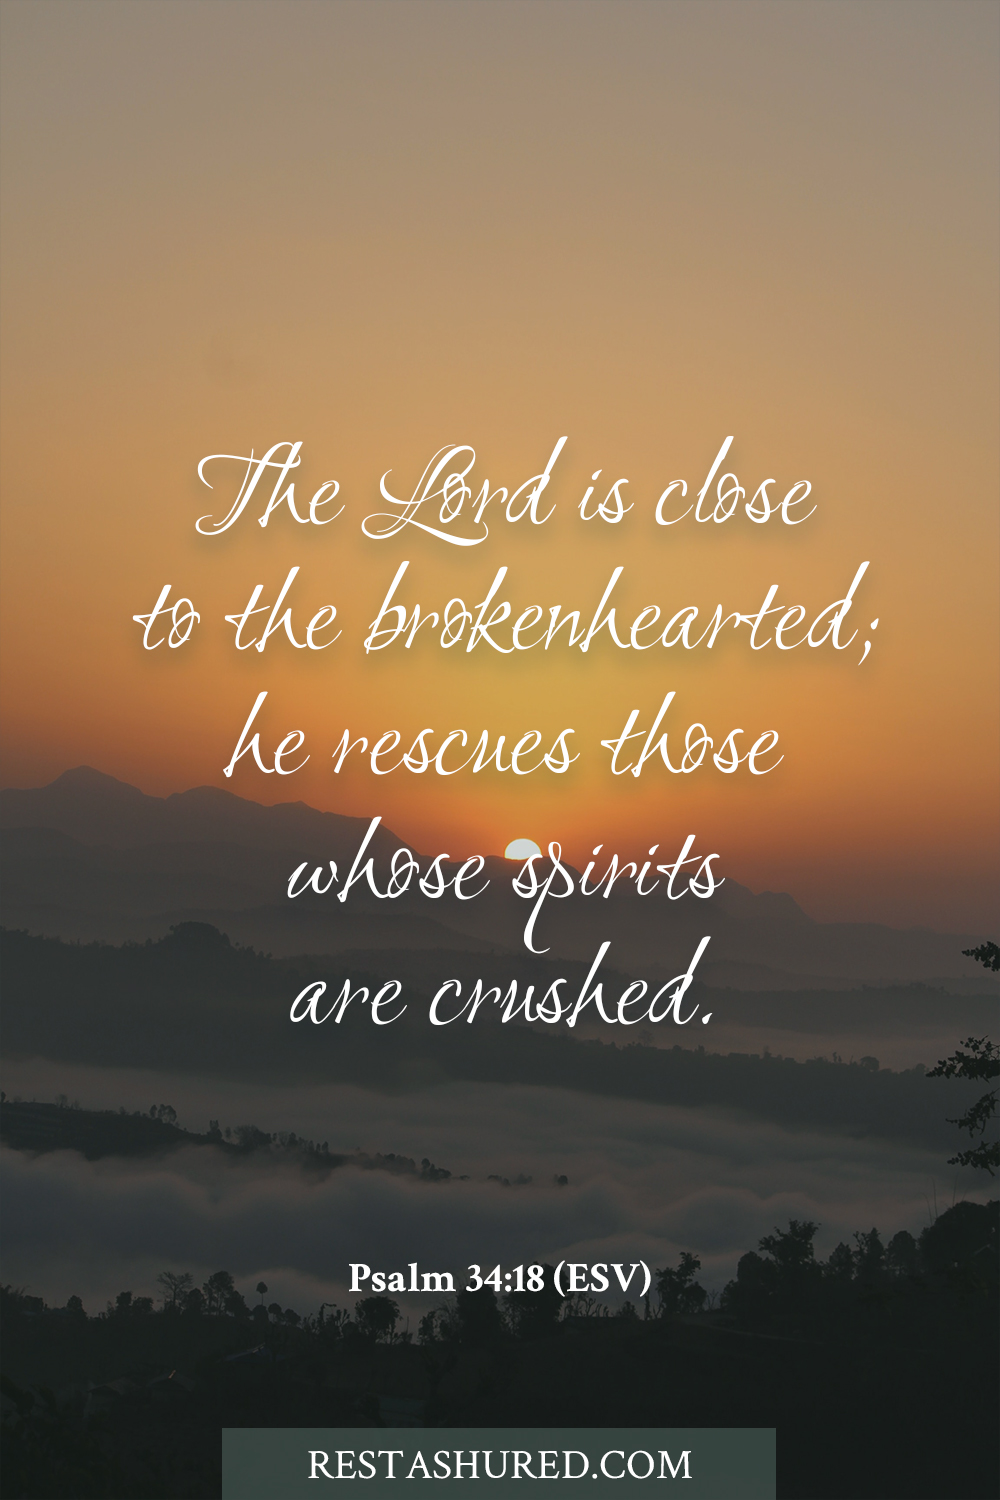 Psalm 34:18 - The Lord is close to the brokenhearted; he rescues those whose spirits are crushed.